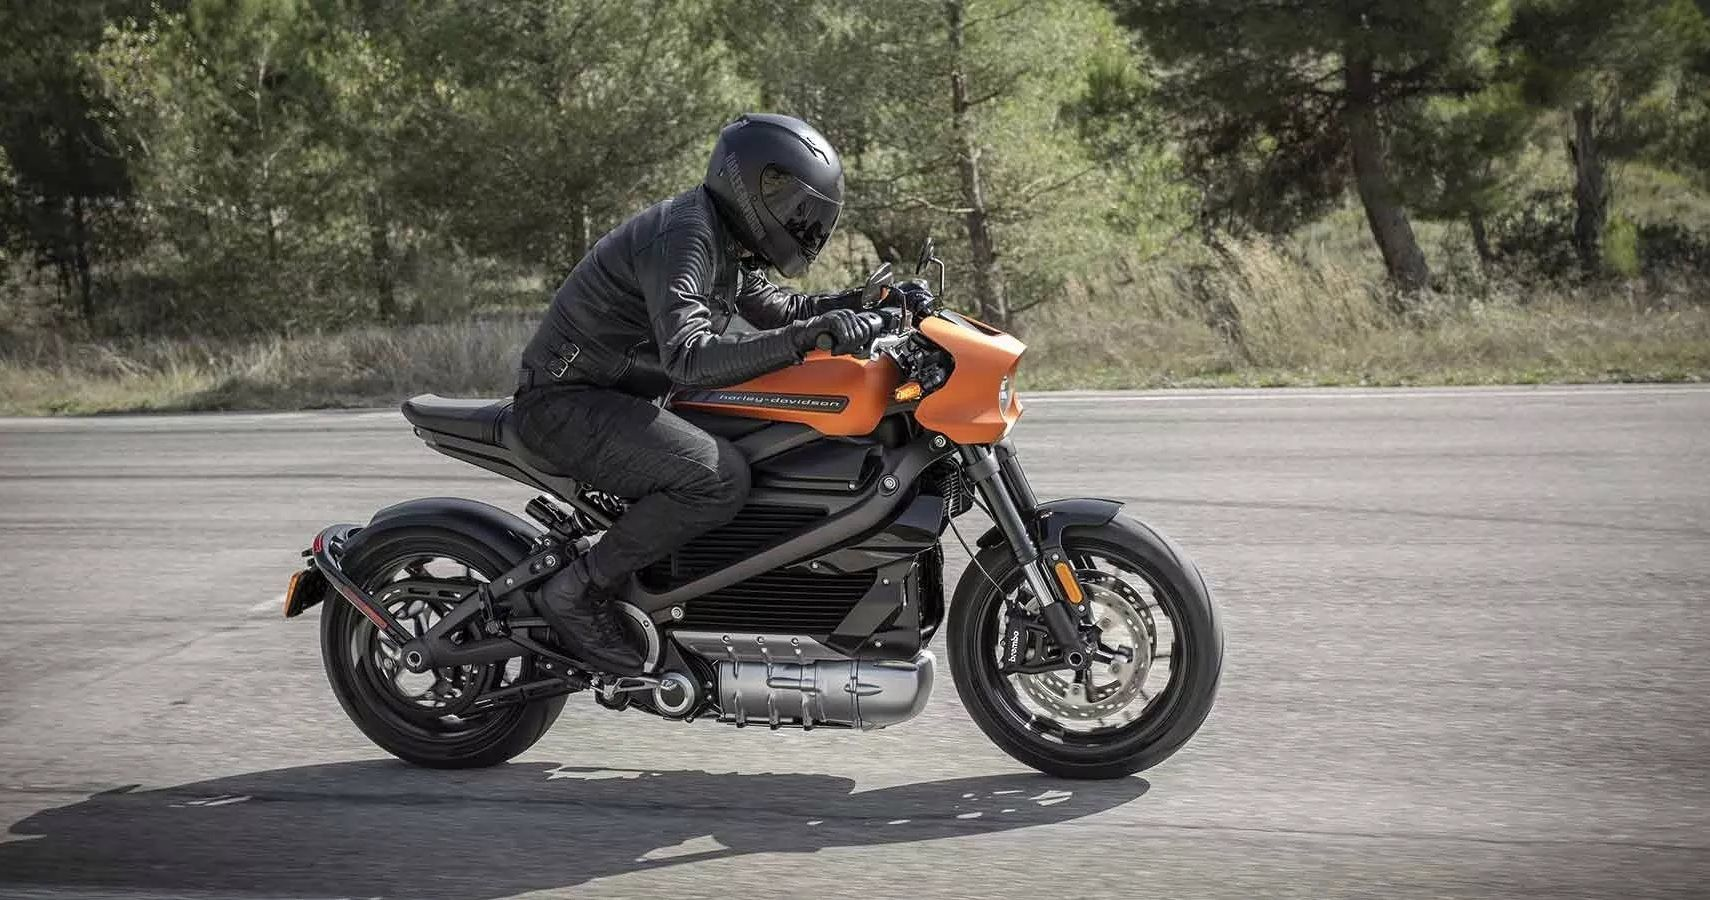 Harley Davidson's Electric Motorcycle Sounds Right Out Of A Sci-Fi Movie